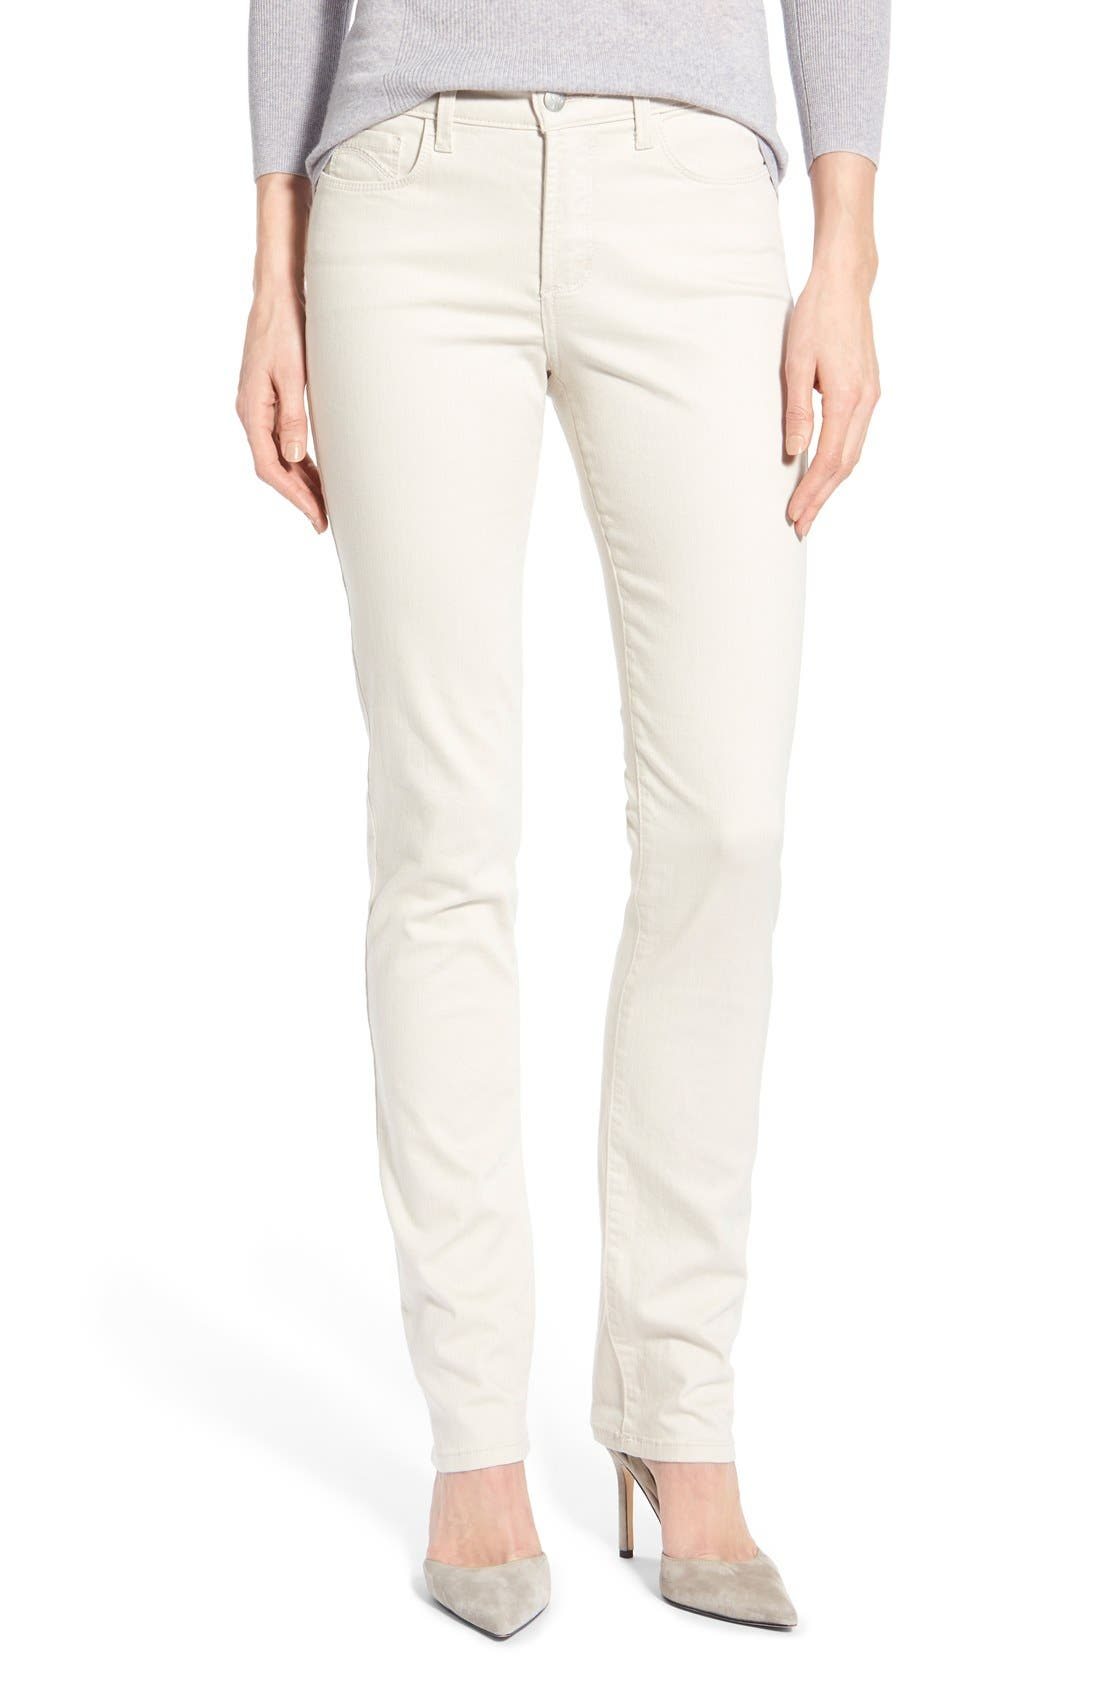 Alternate Image 1 Selected - NYDJ 'Samantha' Stretch Slim Straight Leg Jeans (Regular & Petite)